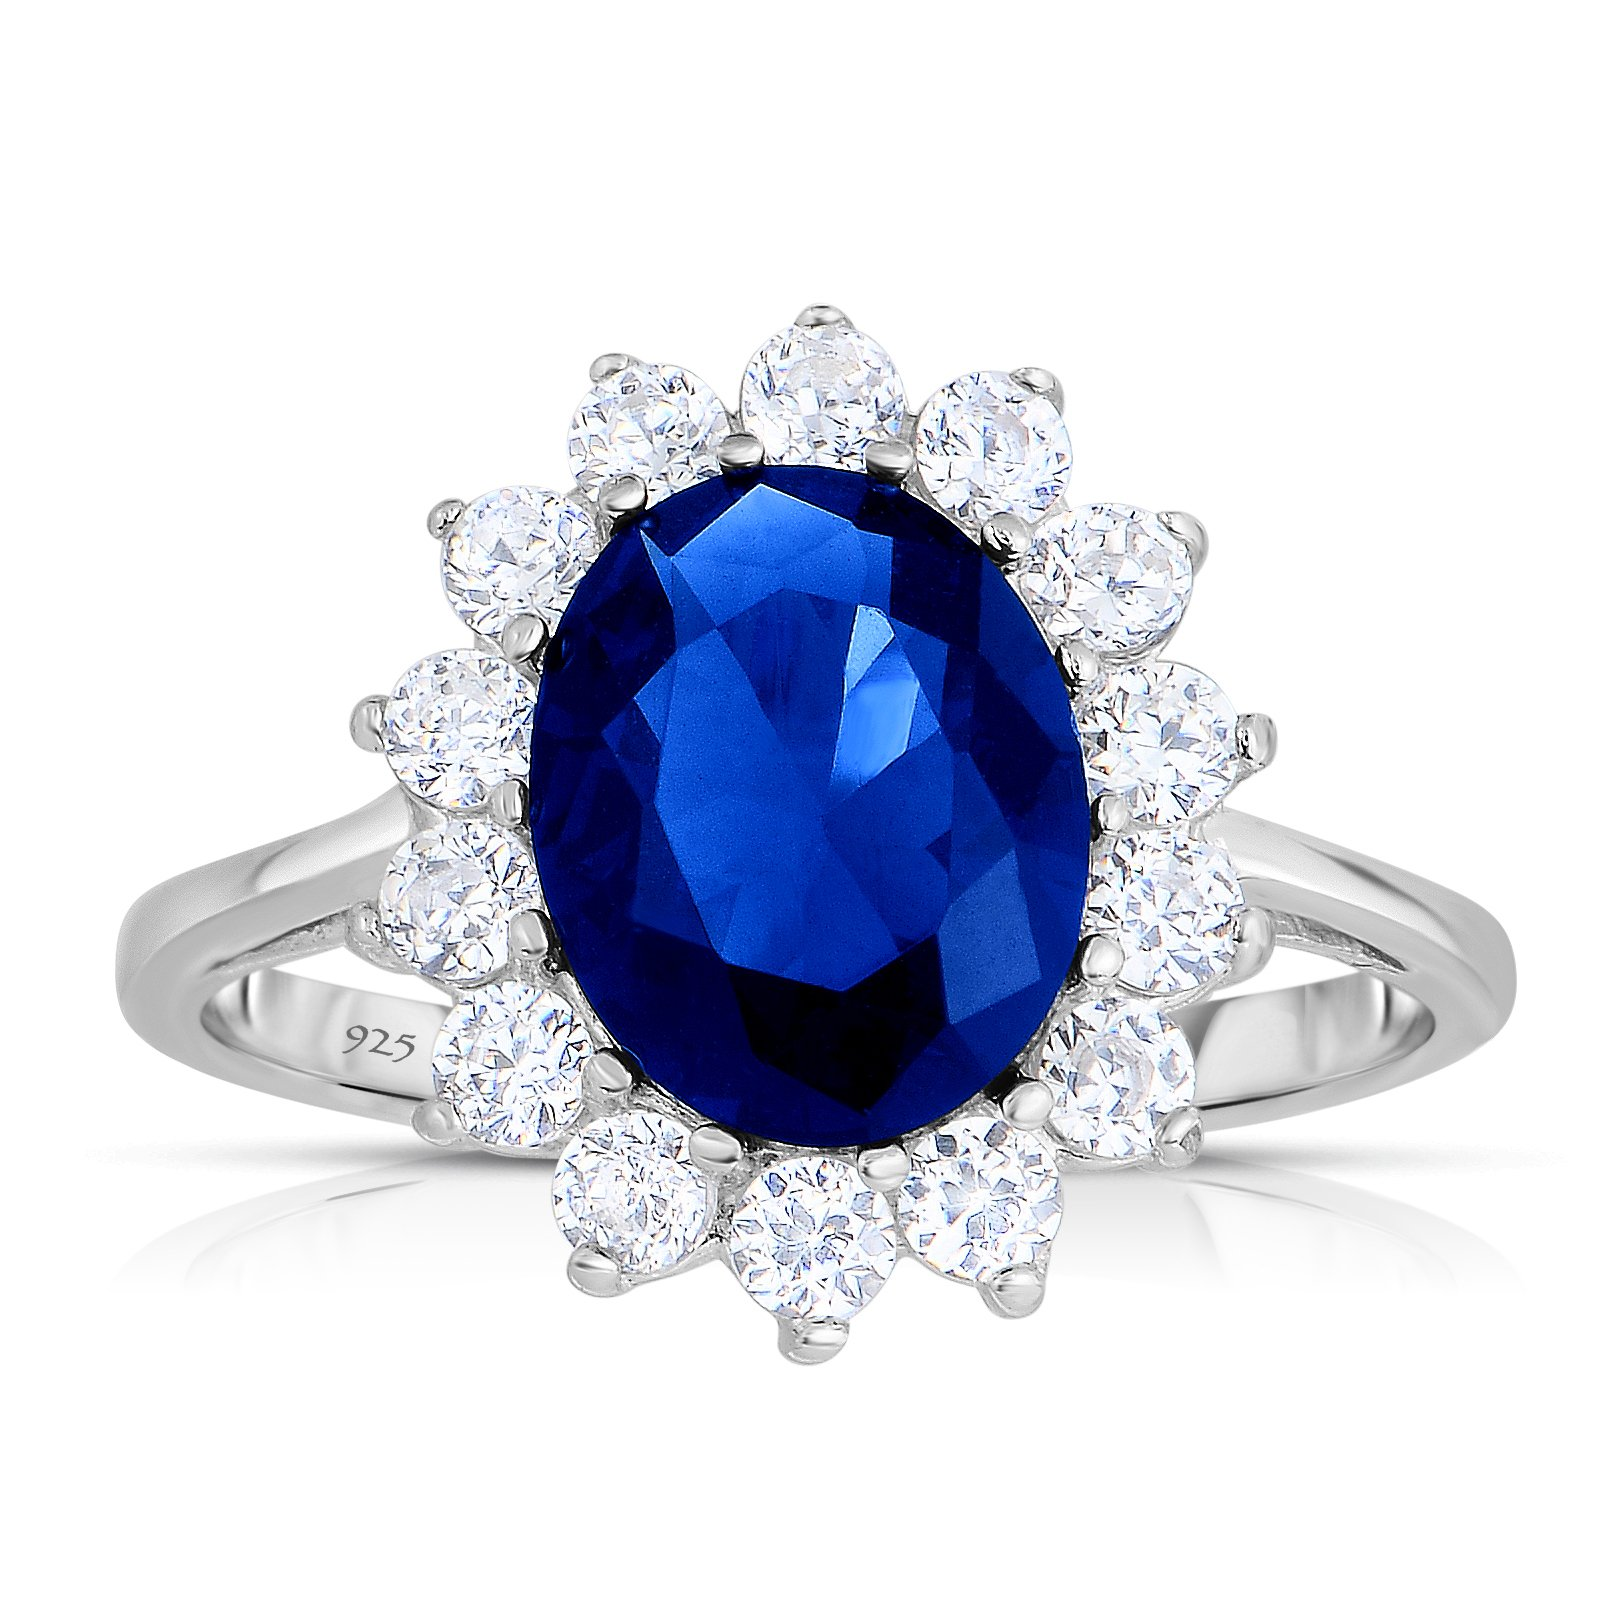 Sterling Silver Kashmir Blue Sapphire CZ with White CZ Helo Jacket Princess Diana Kate Engagement Ring (5)